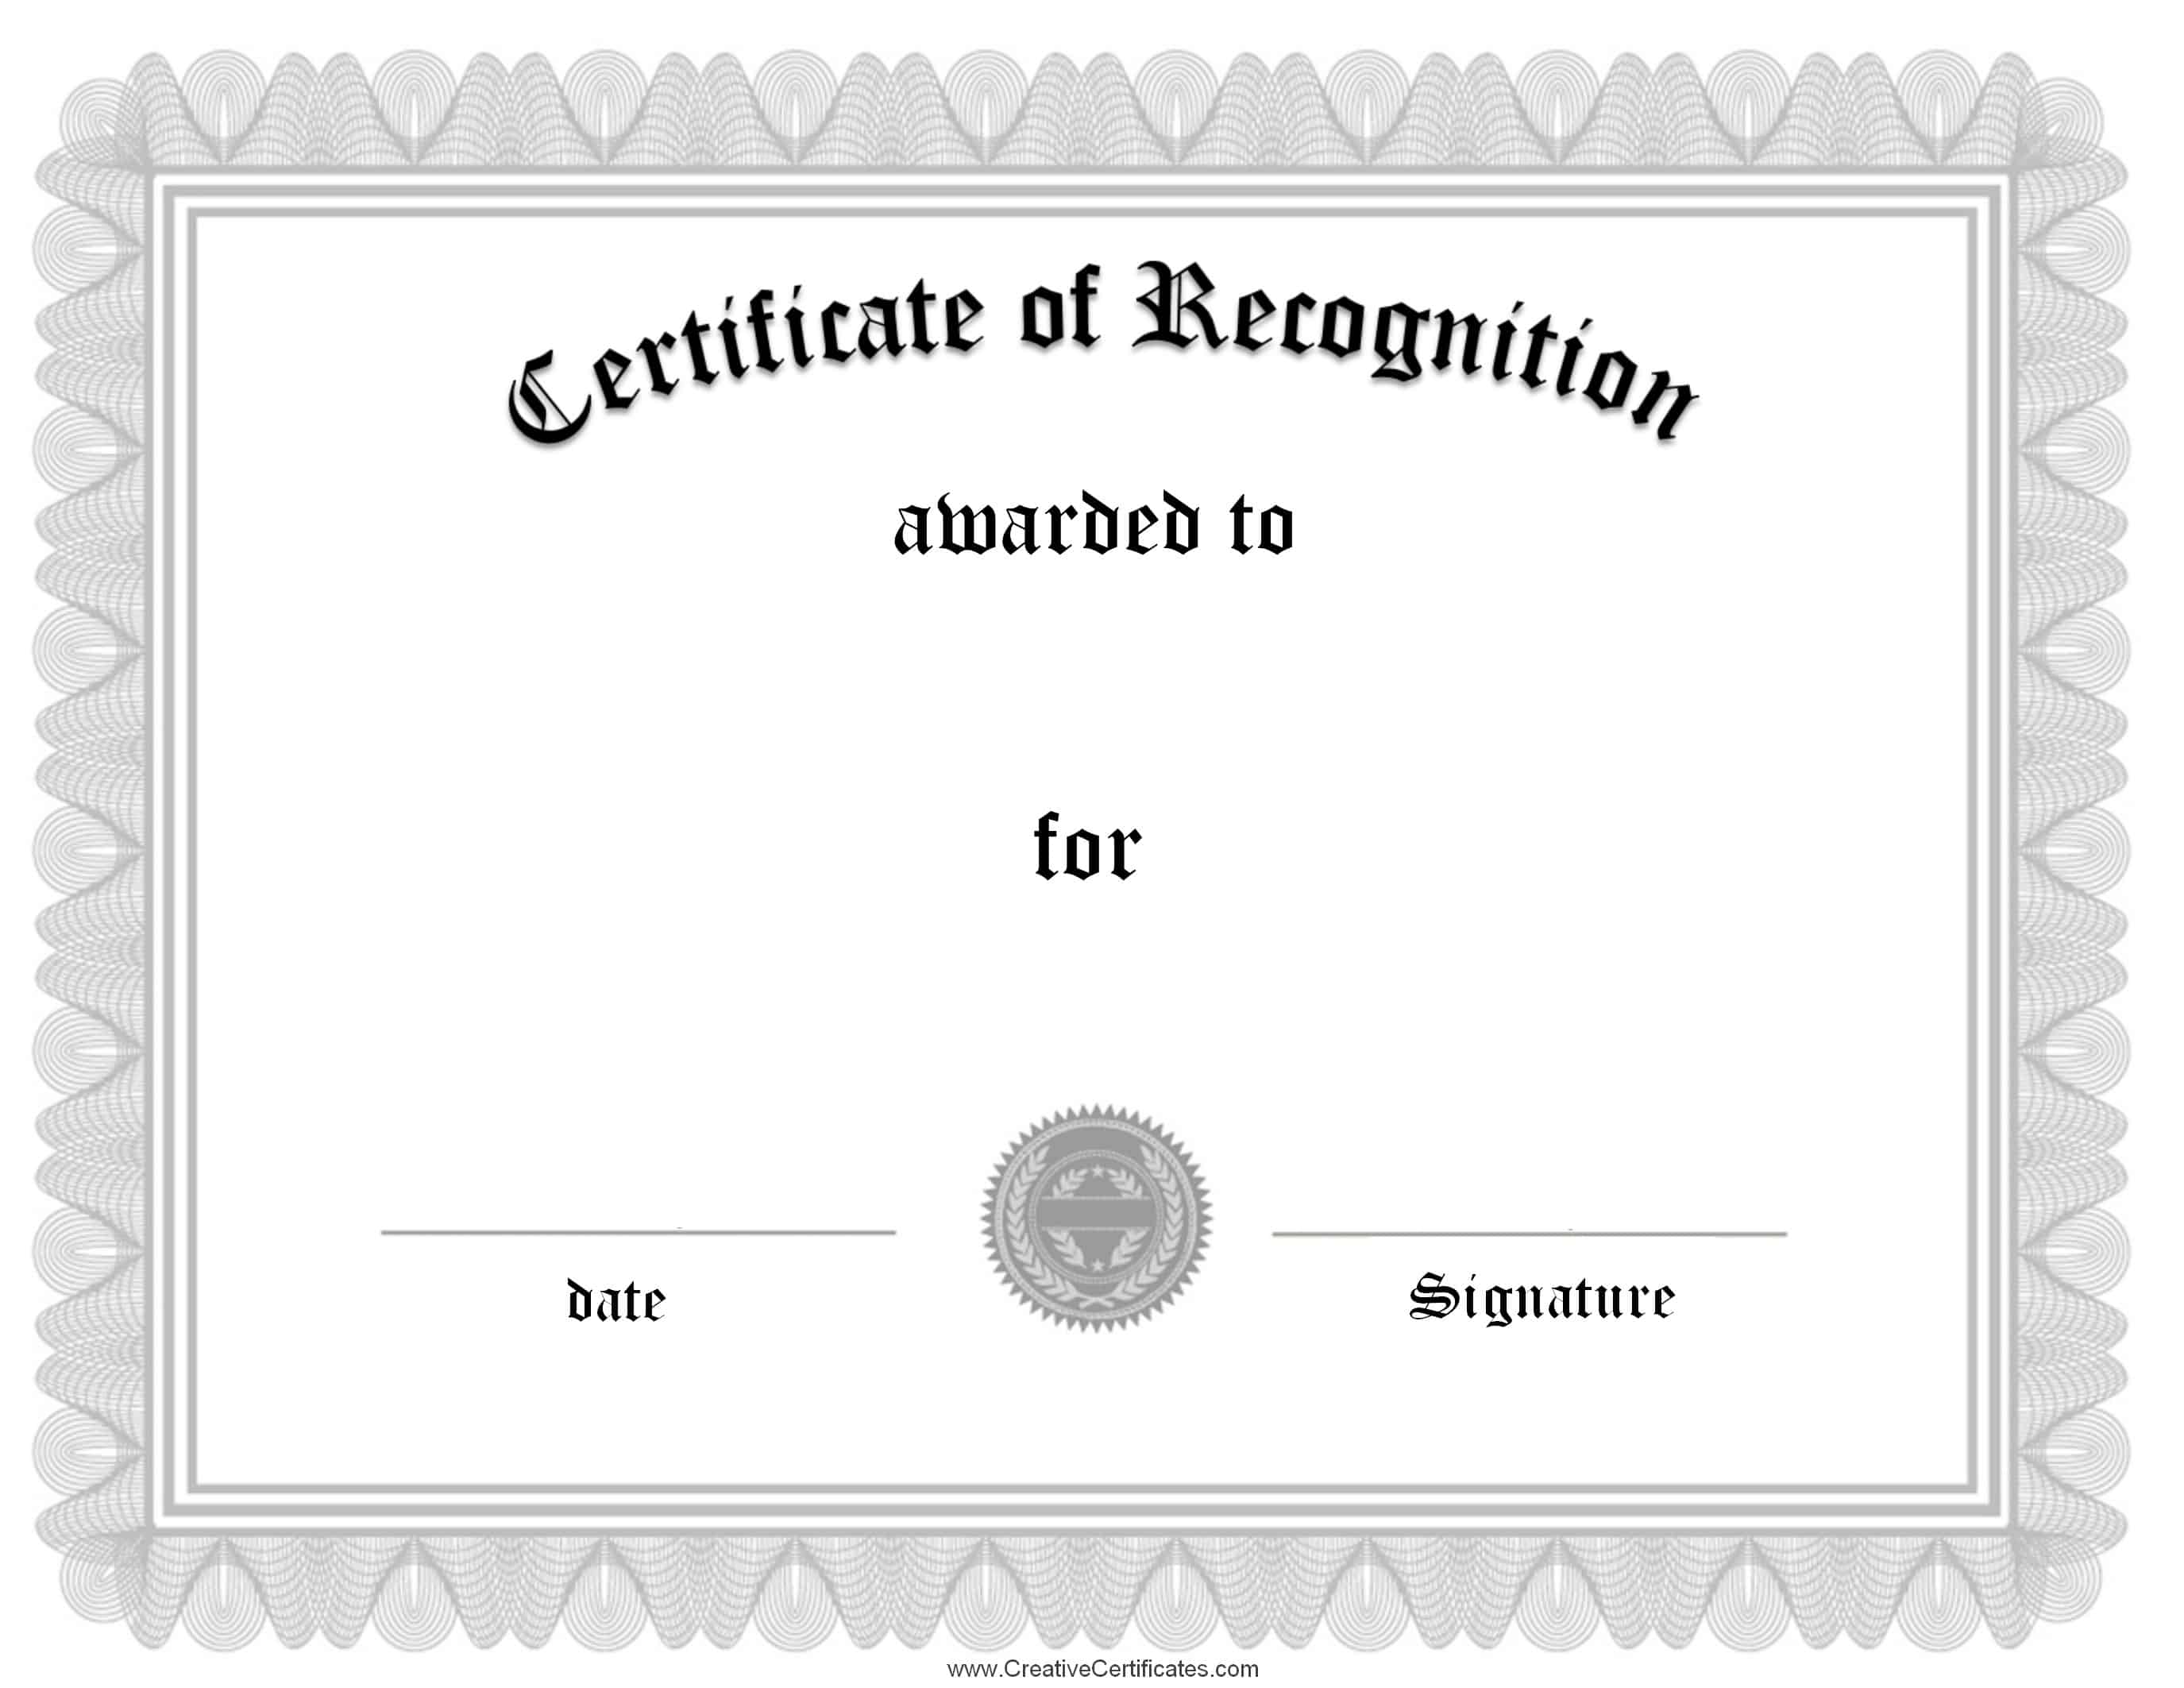 Free certificate of recognition template customize online silver 1betcityfo Image collections